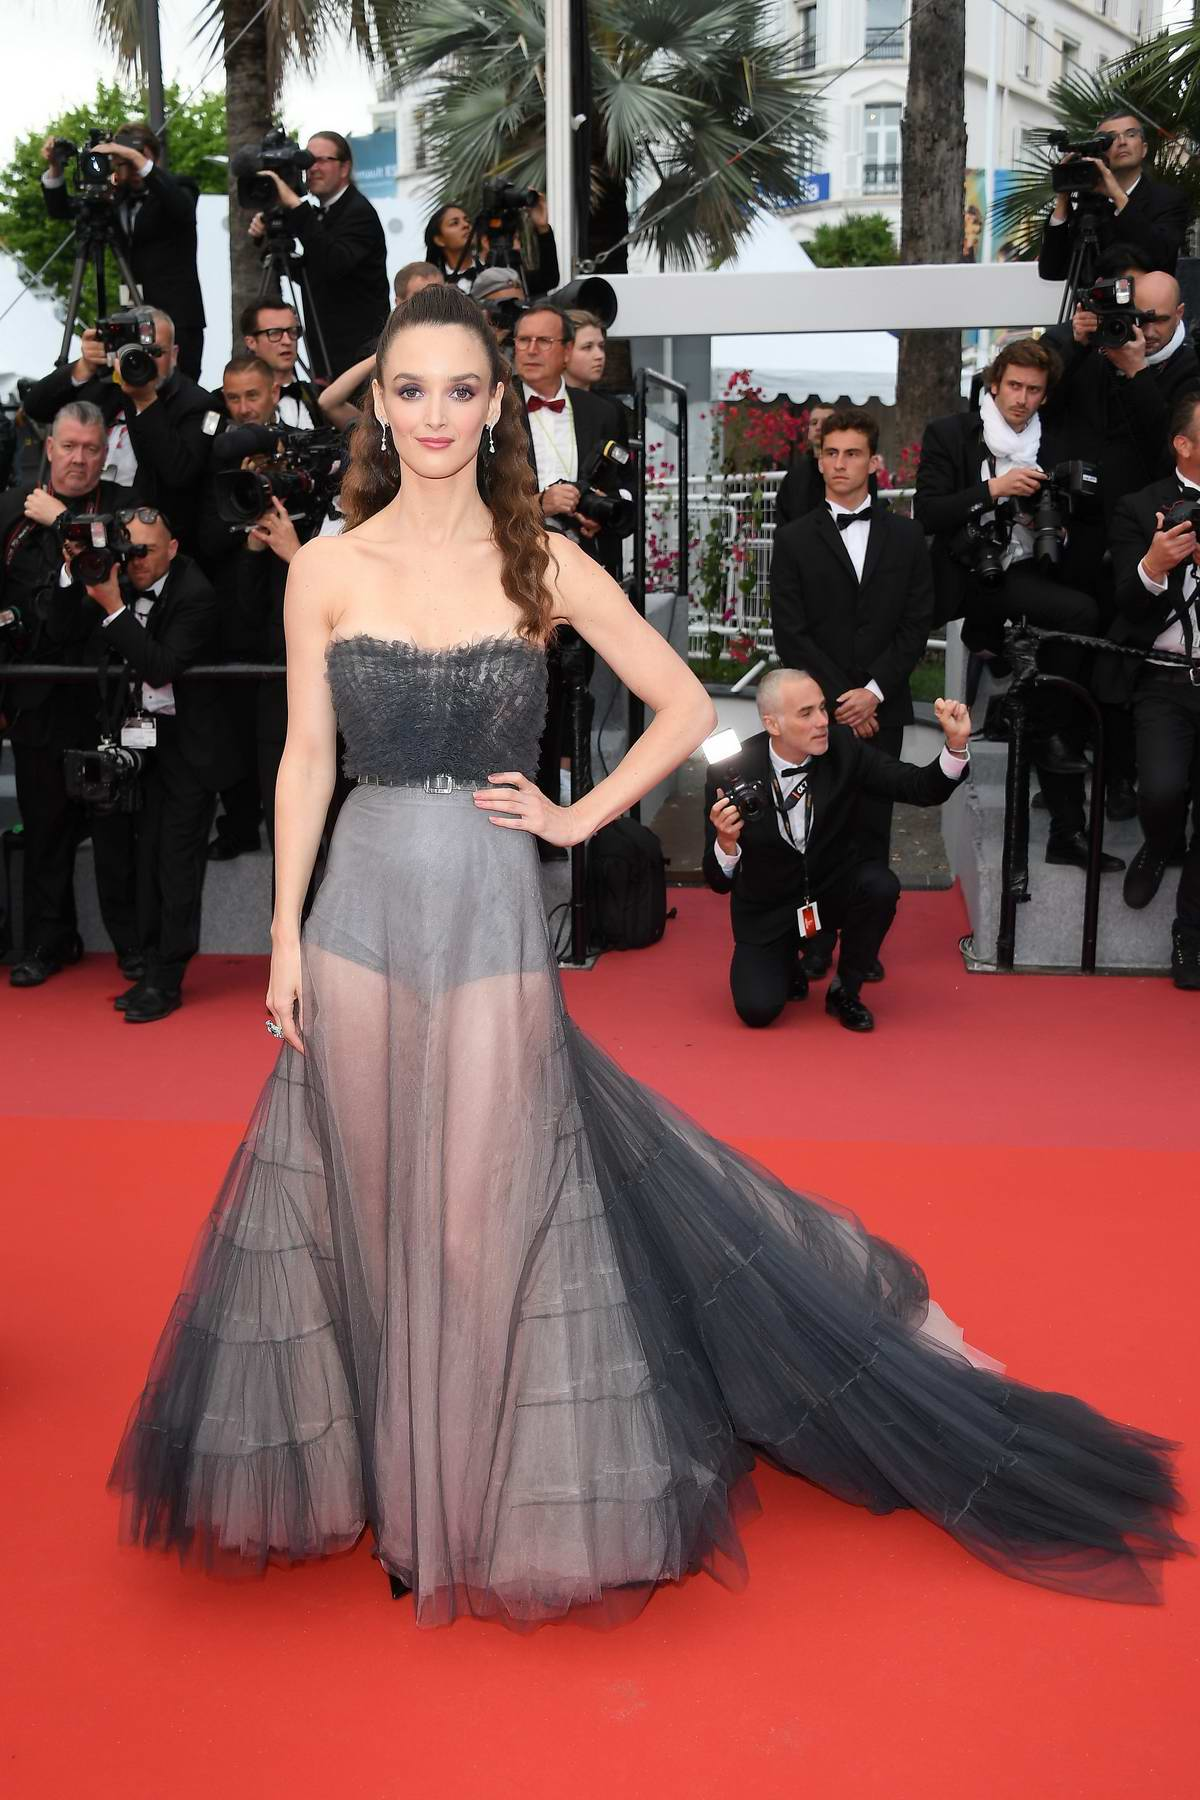 Charlotte Le Bon attends the 'BlacKkKlansman' premiere during 71st Cannes Film Festival in Cannes, France